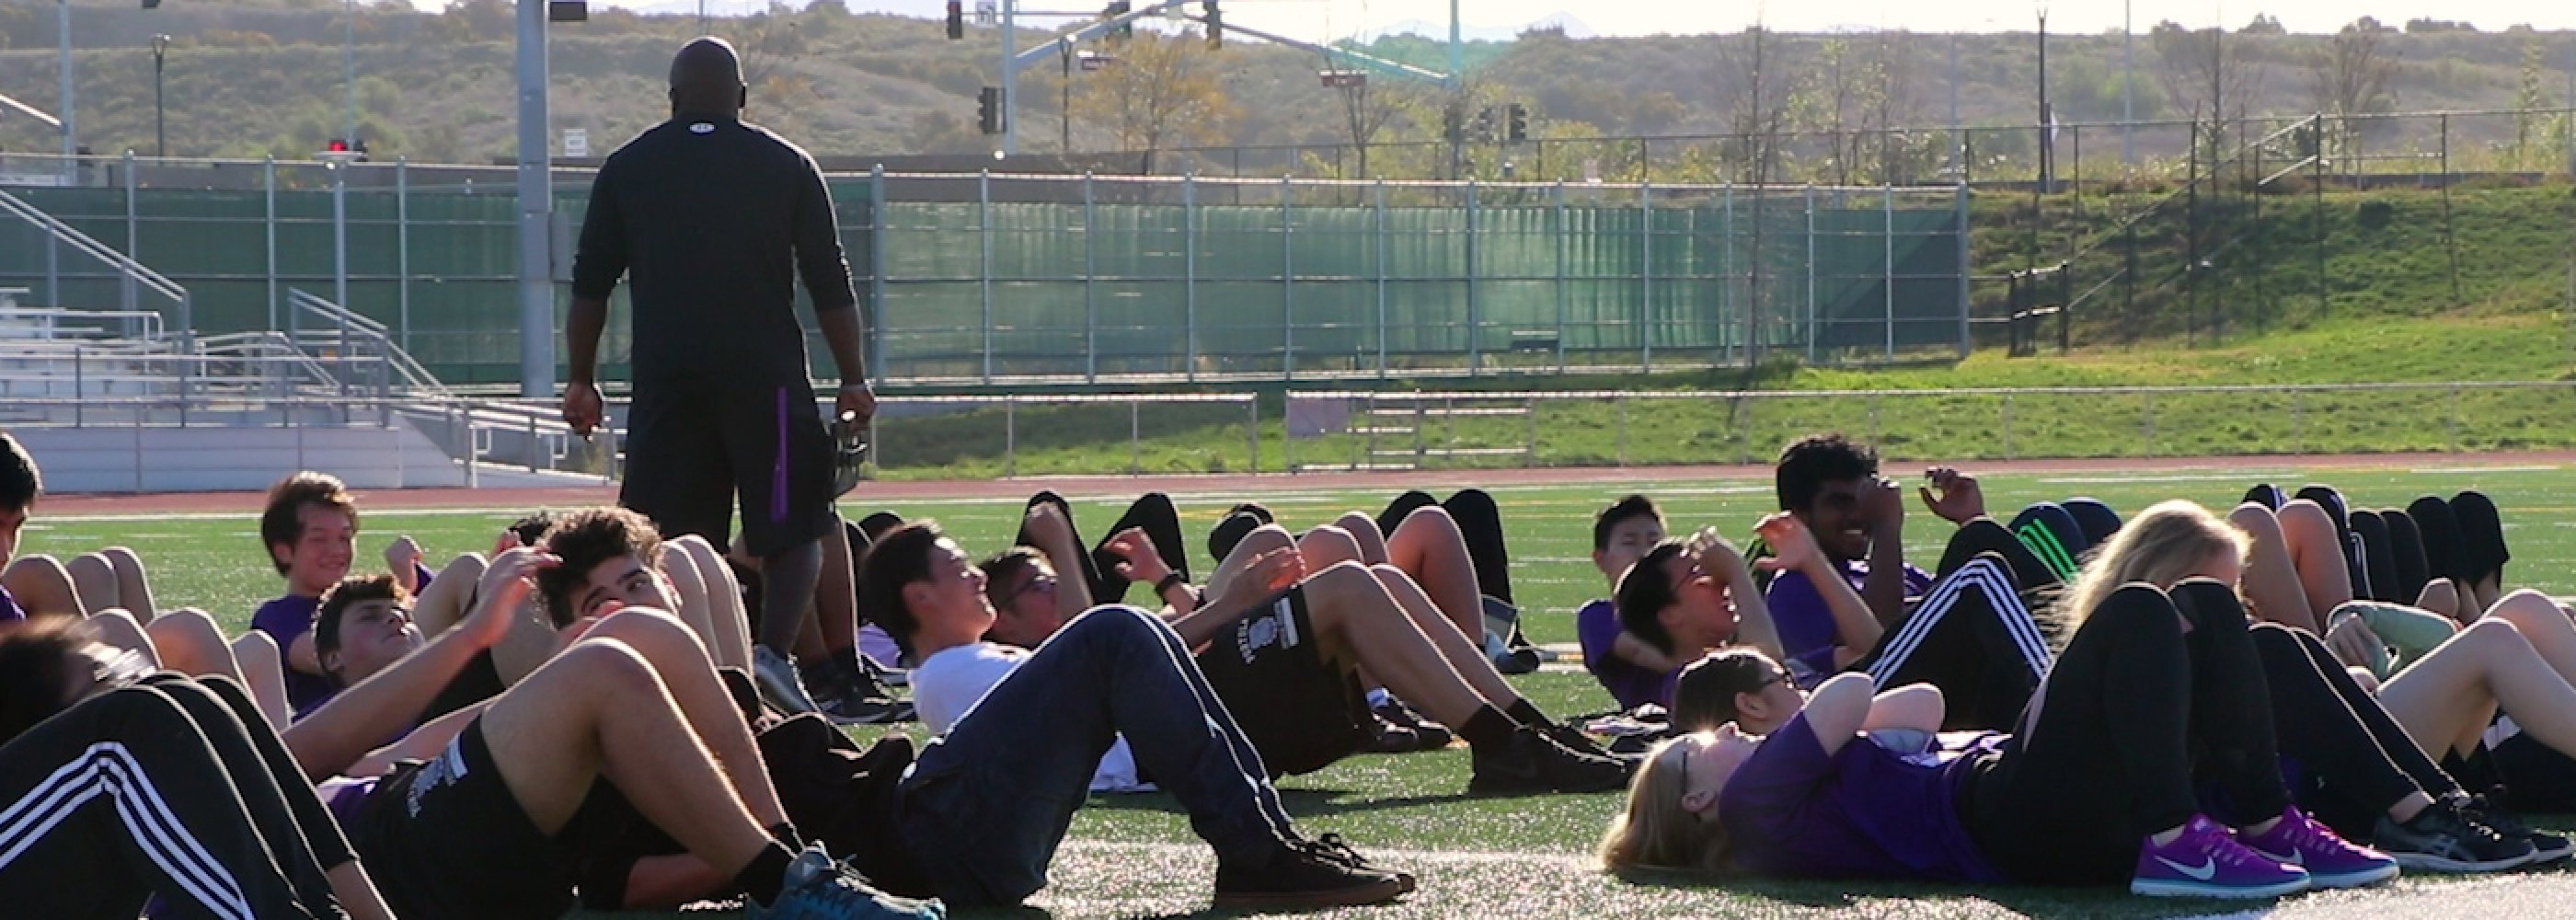 Students doing sit-ups